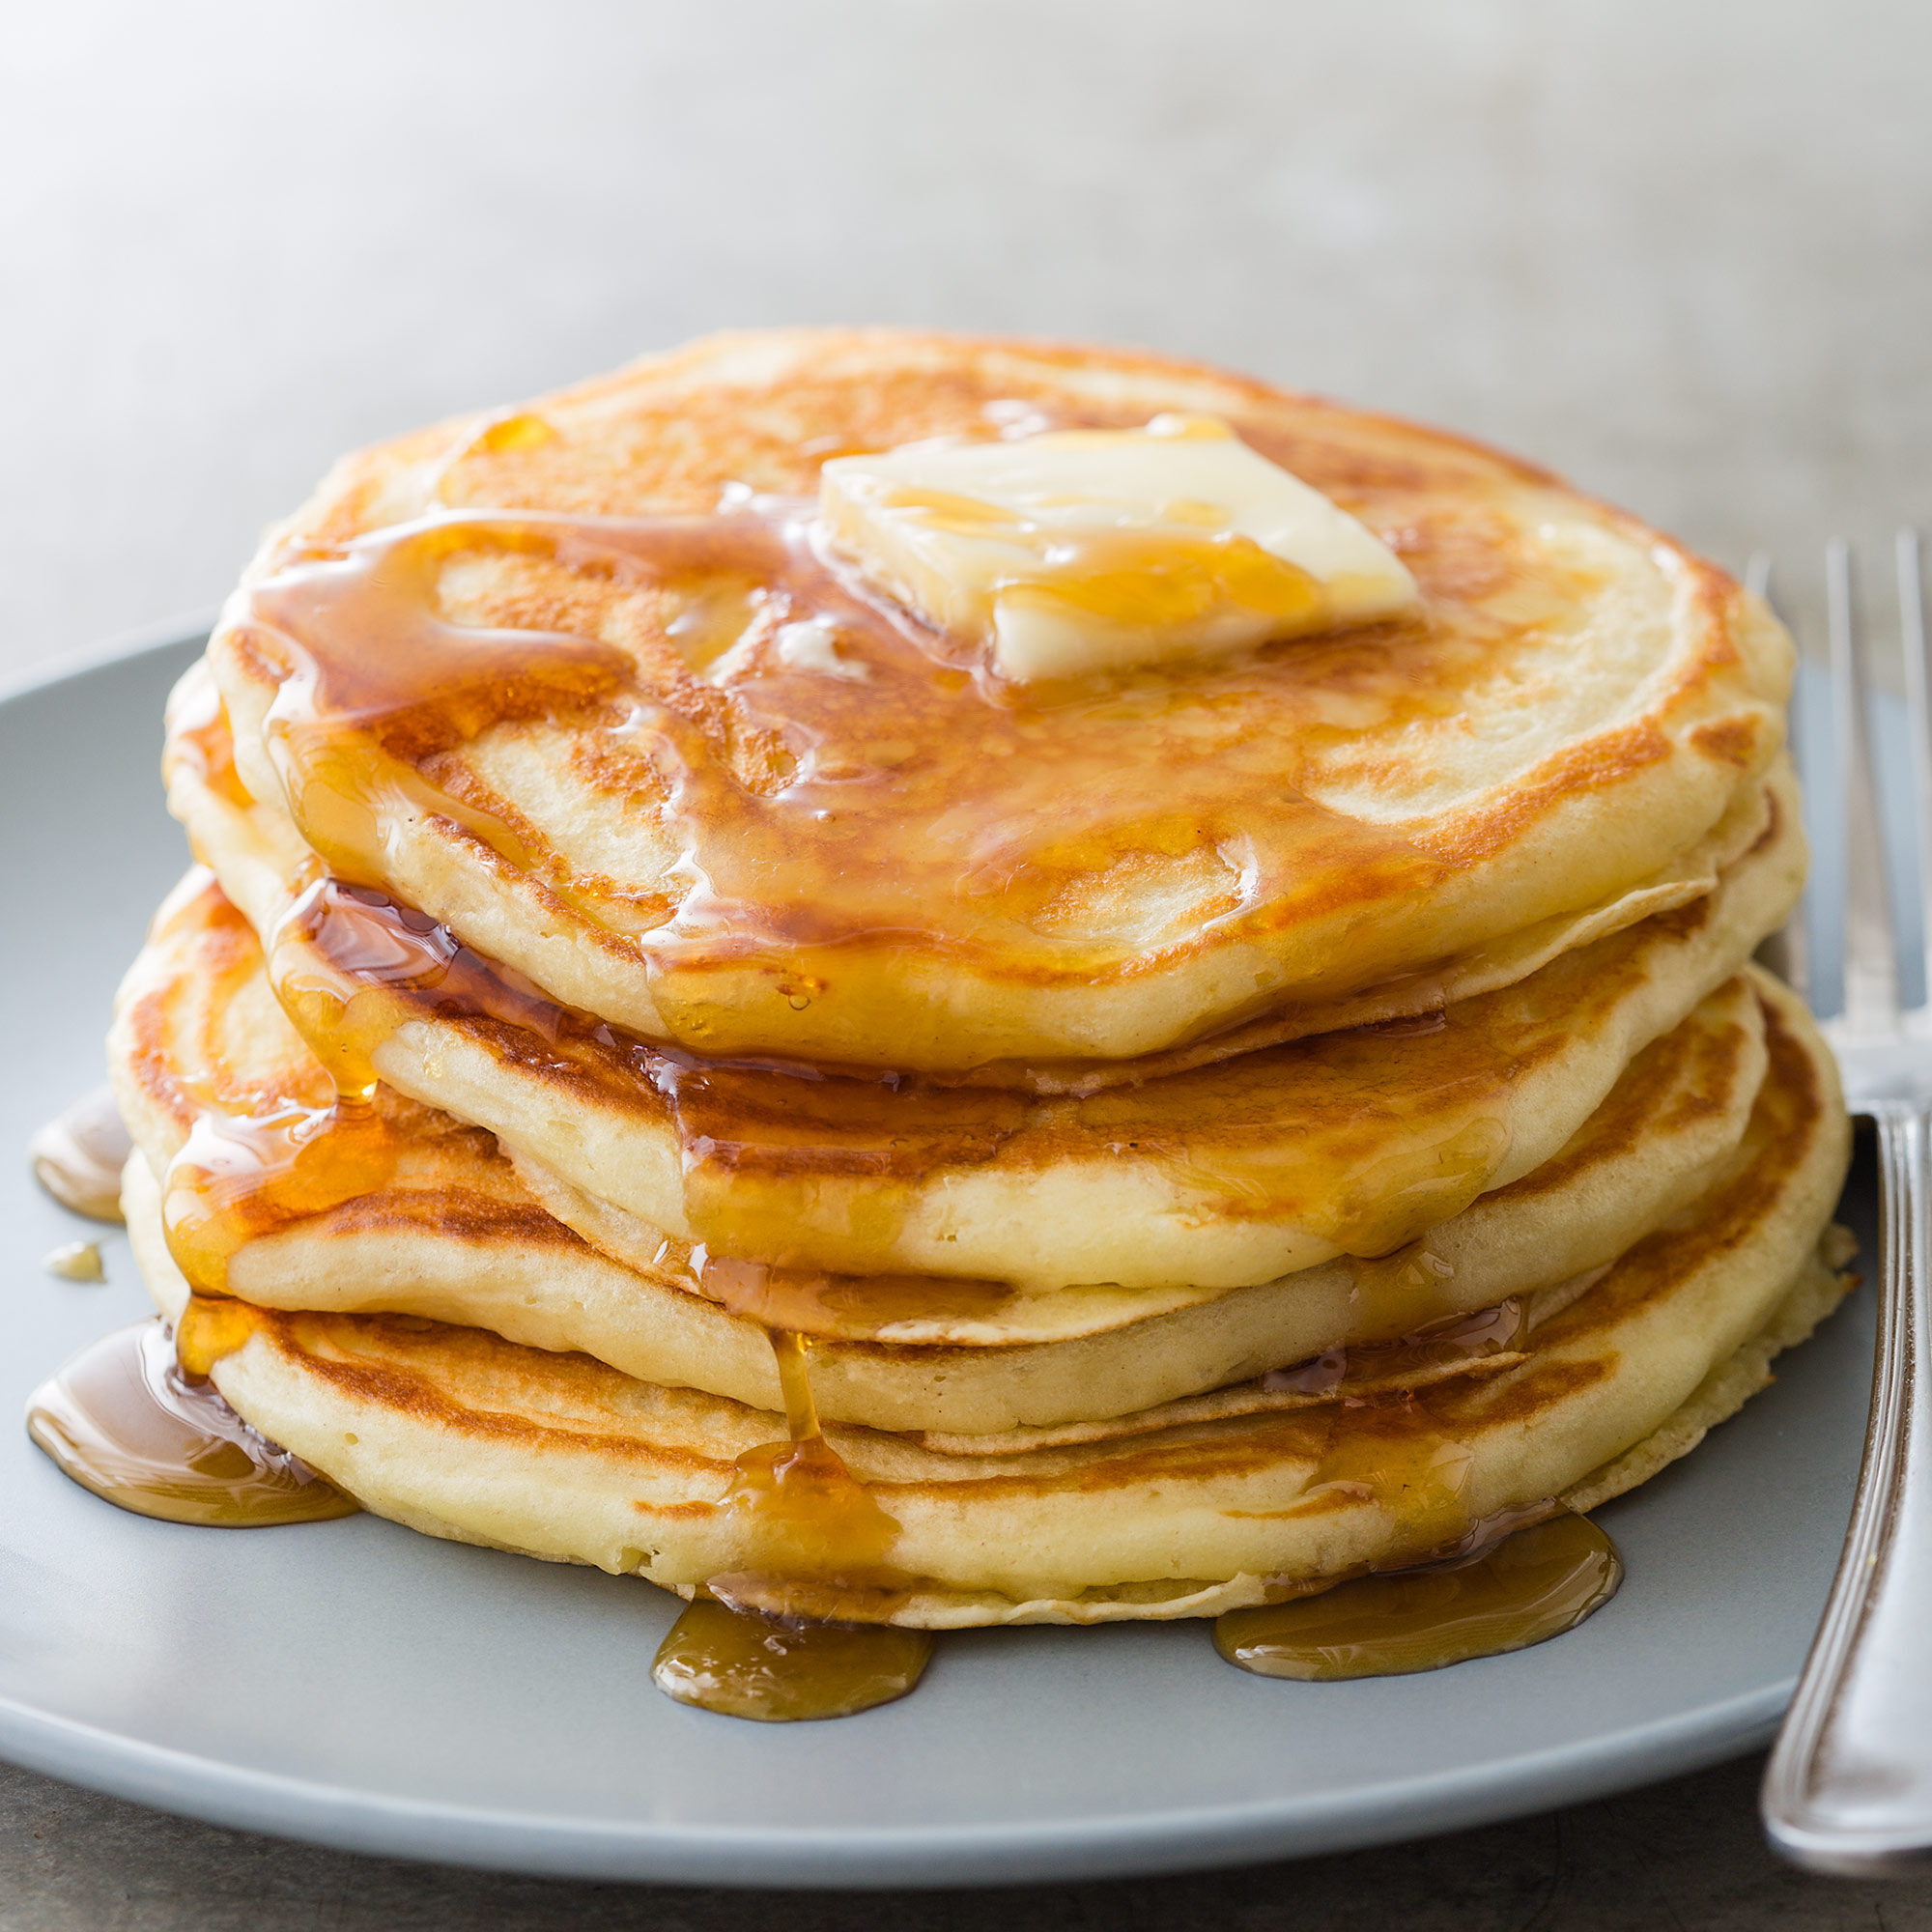 Best Buttermilk Pancakes Recipe - Cook's Illustrated